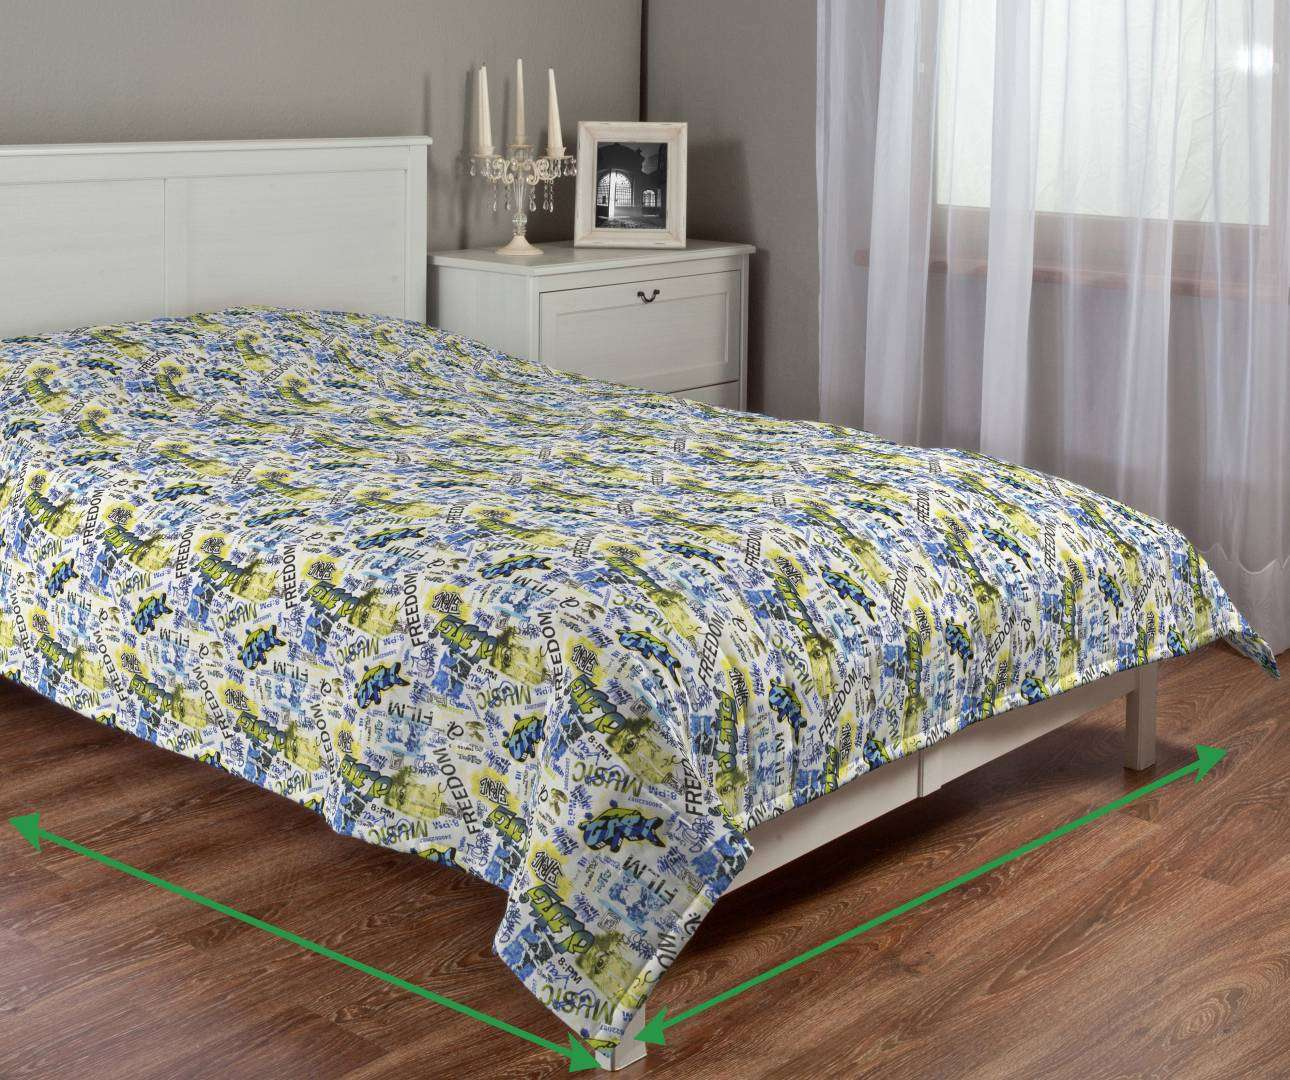 Quilted throw (vertical quilt pattern) in collection Freestyle, fabric: 135-08